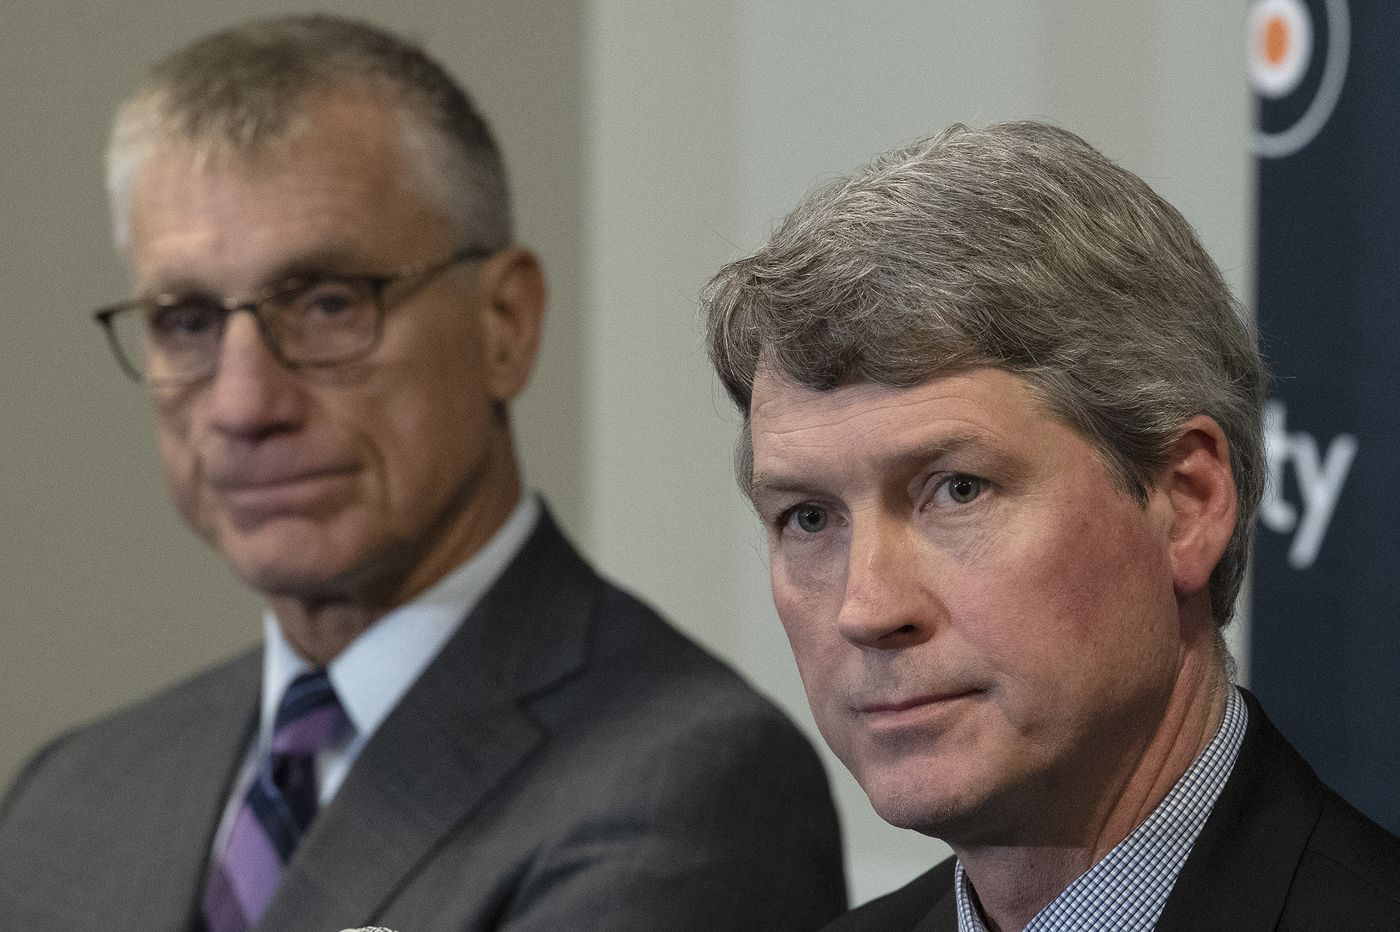 With trade deadline approaching, Flyers GM Chuck Fletcher searching for 'opportunities' | Sam Carchidi